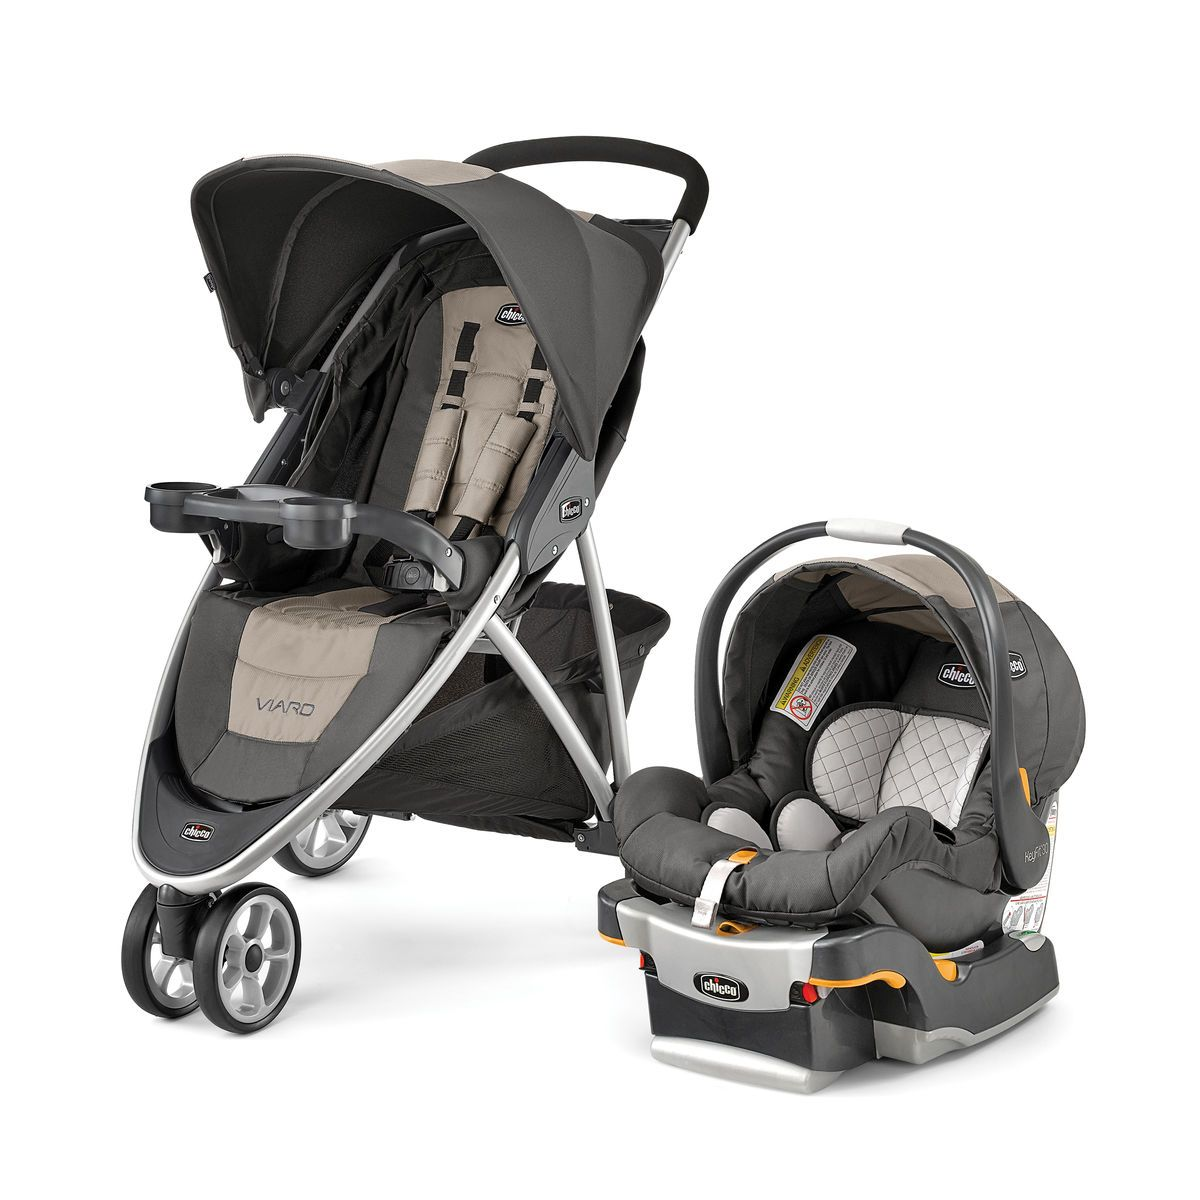 Graco FastAction Fold Click Connect Travel System with